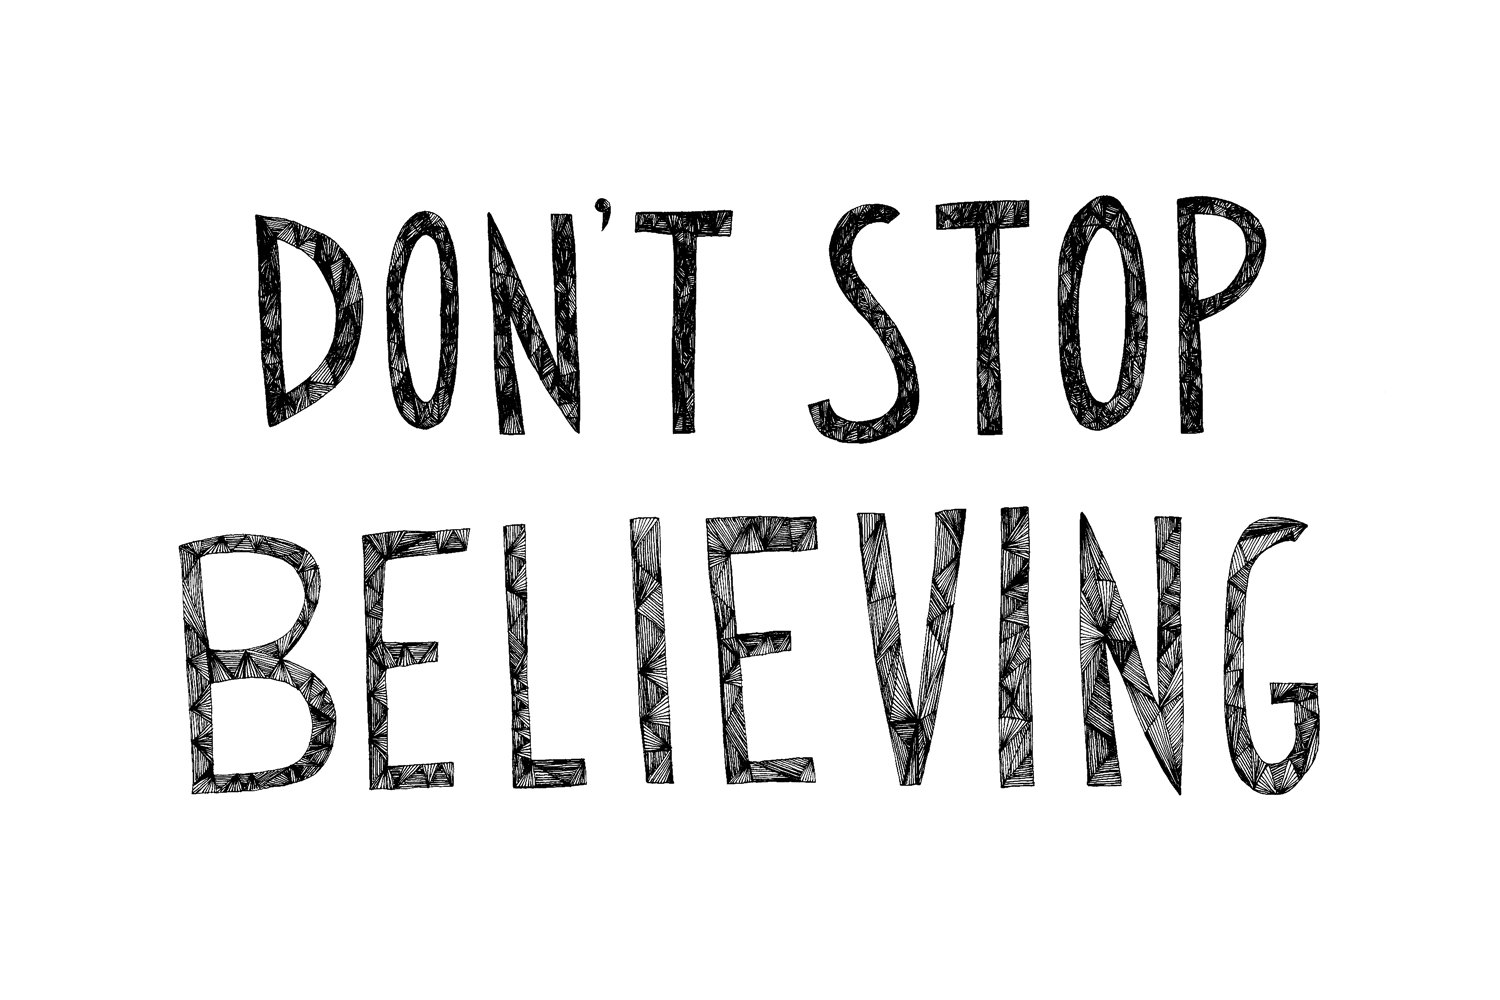 Motivational Quote on Never Stop Believing: THERE IS ALWAYS A WAY IF U DON'T QUIT